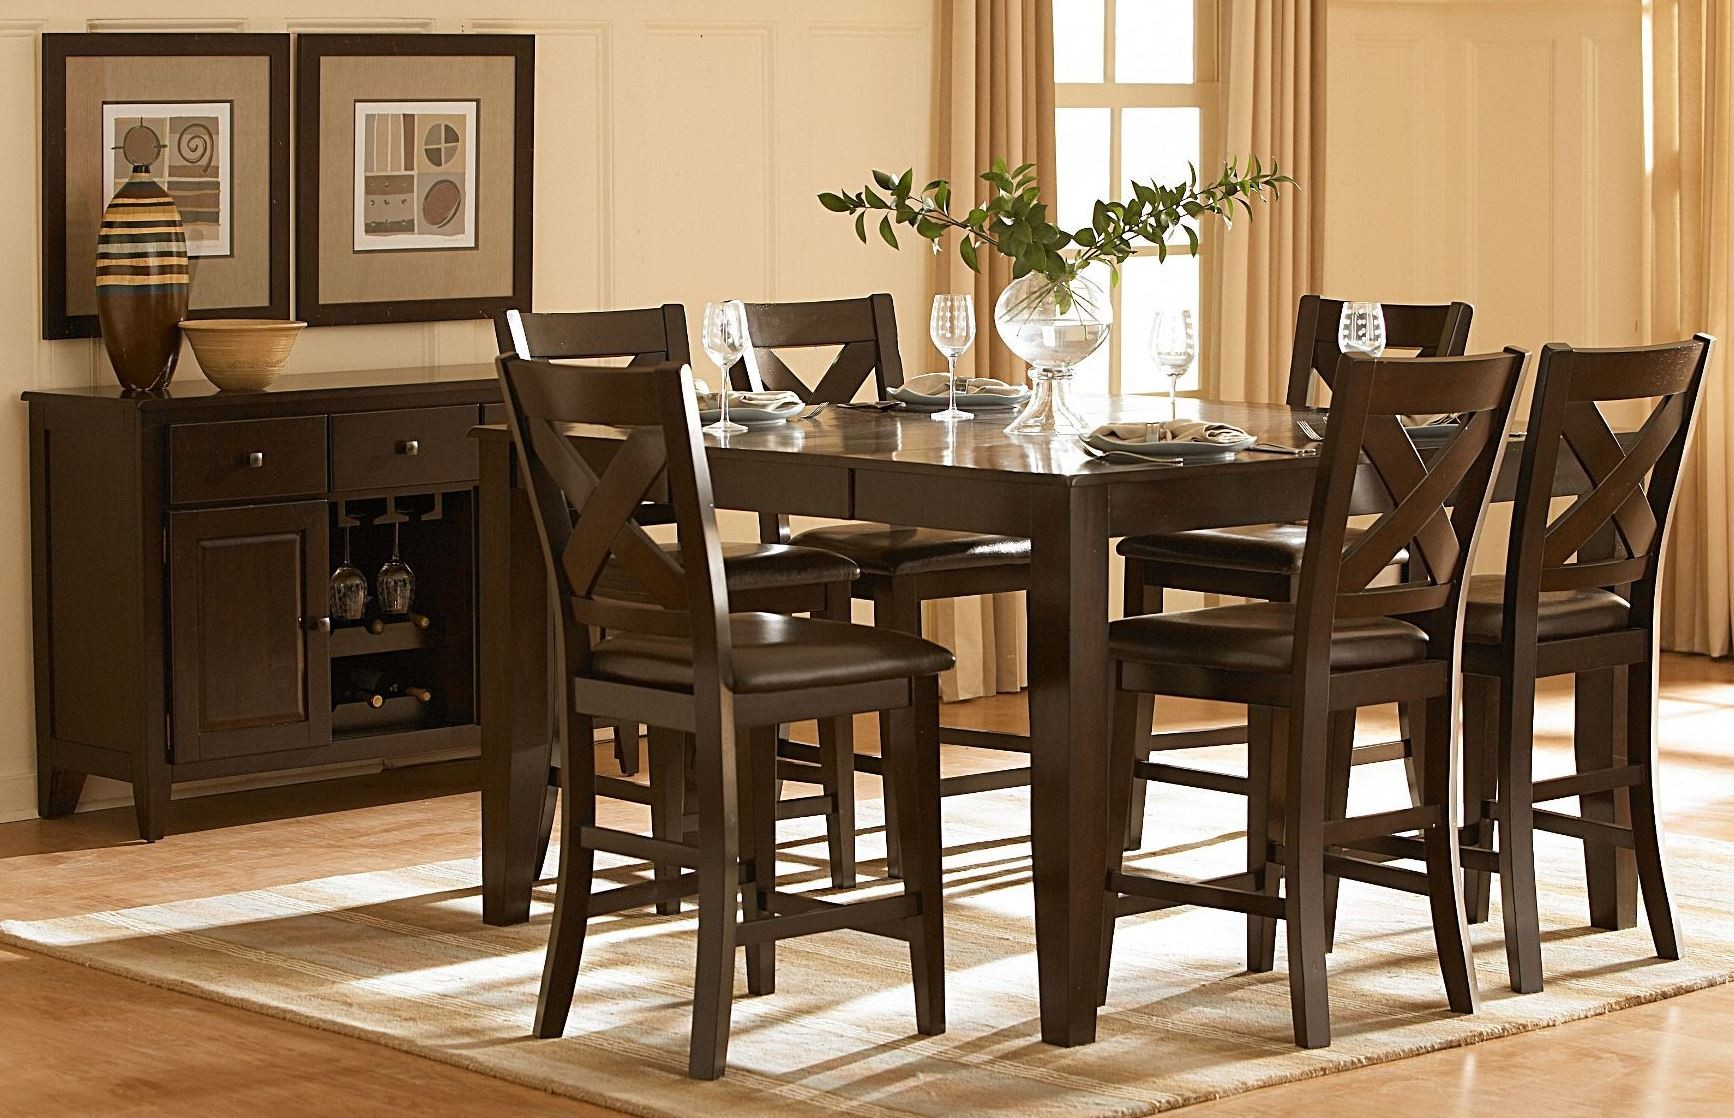 Crown Point Counter Height Dining Room Set From